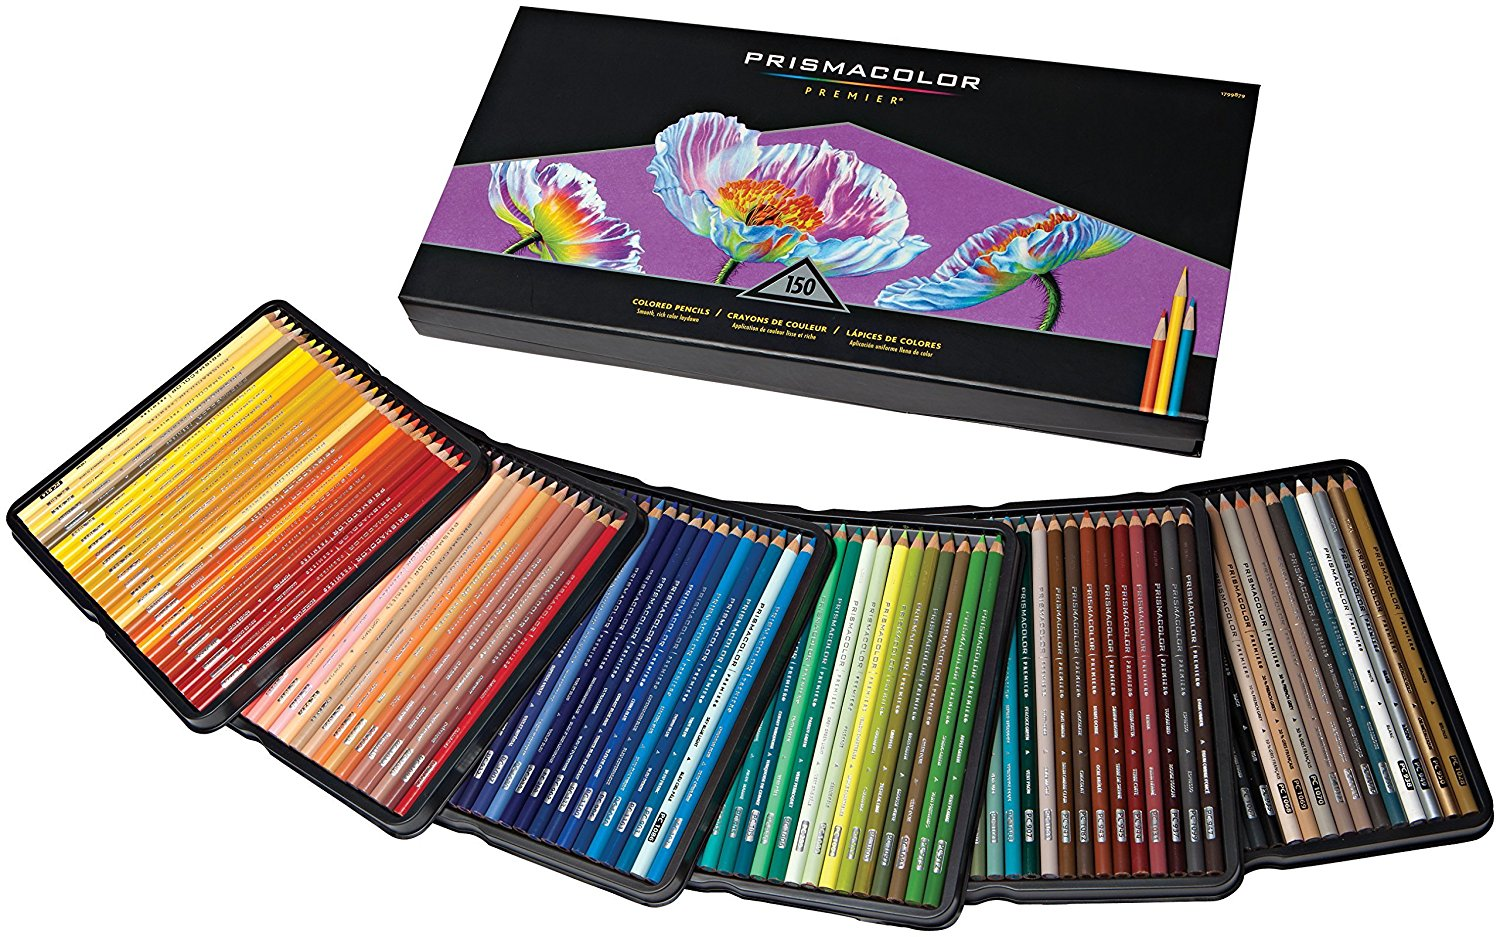 Prismacolor Premier Soft Core Colored Pencils, 150-Count : Wood Colored Pencils